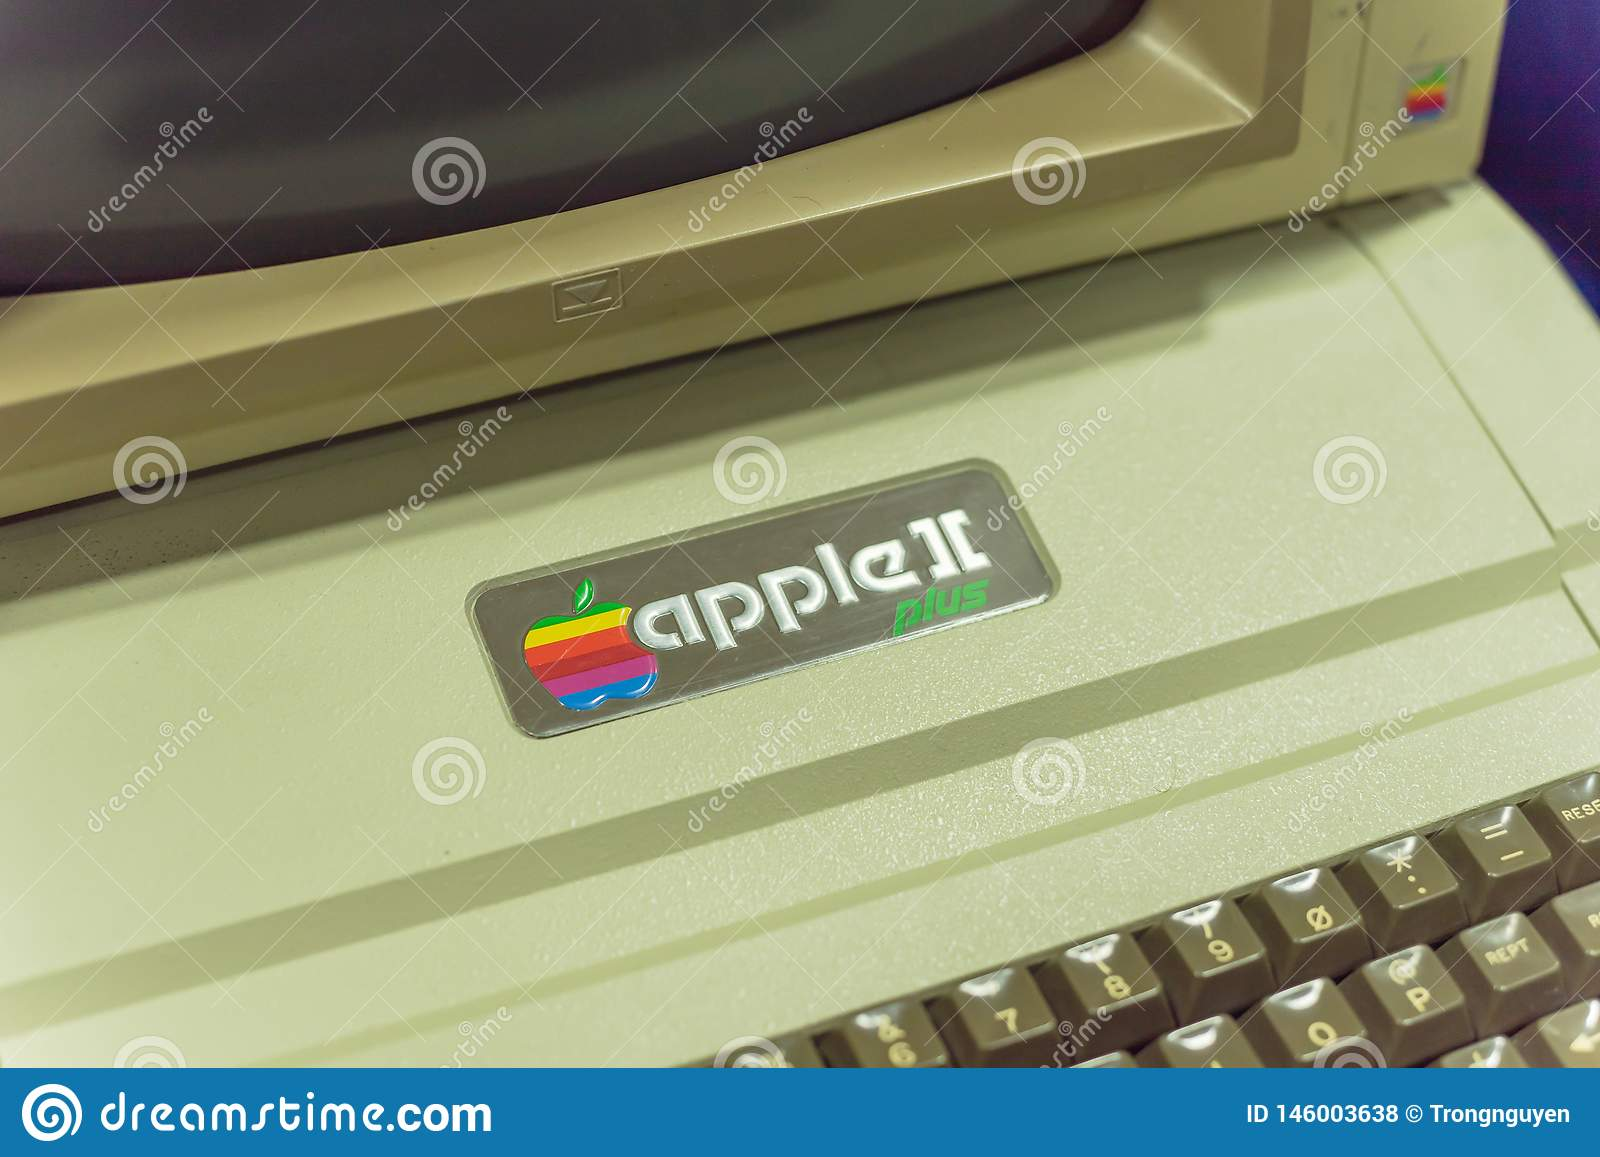 Close-up logo of old Apple II computer